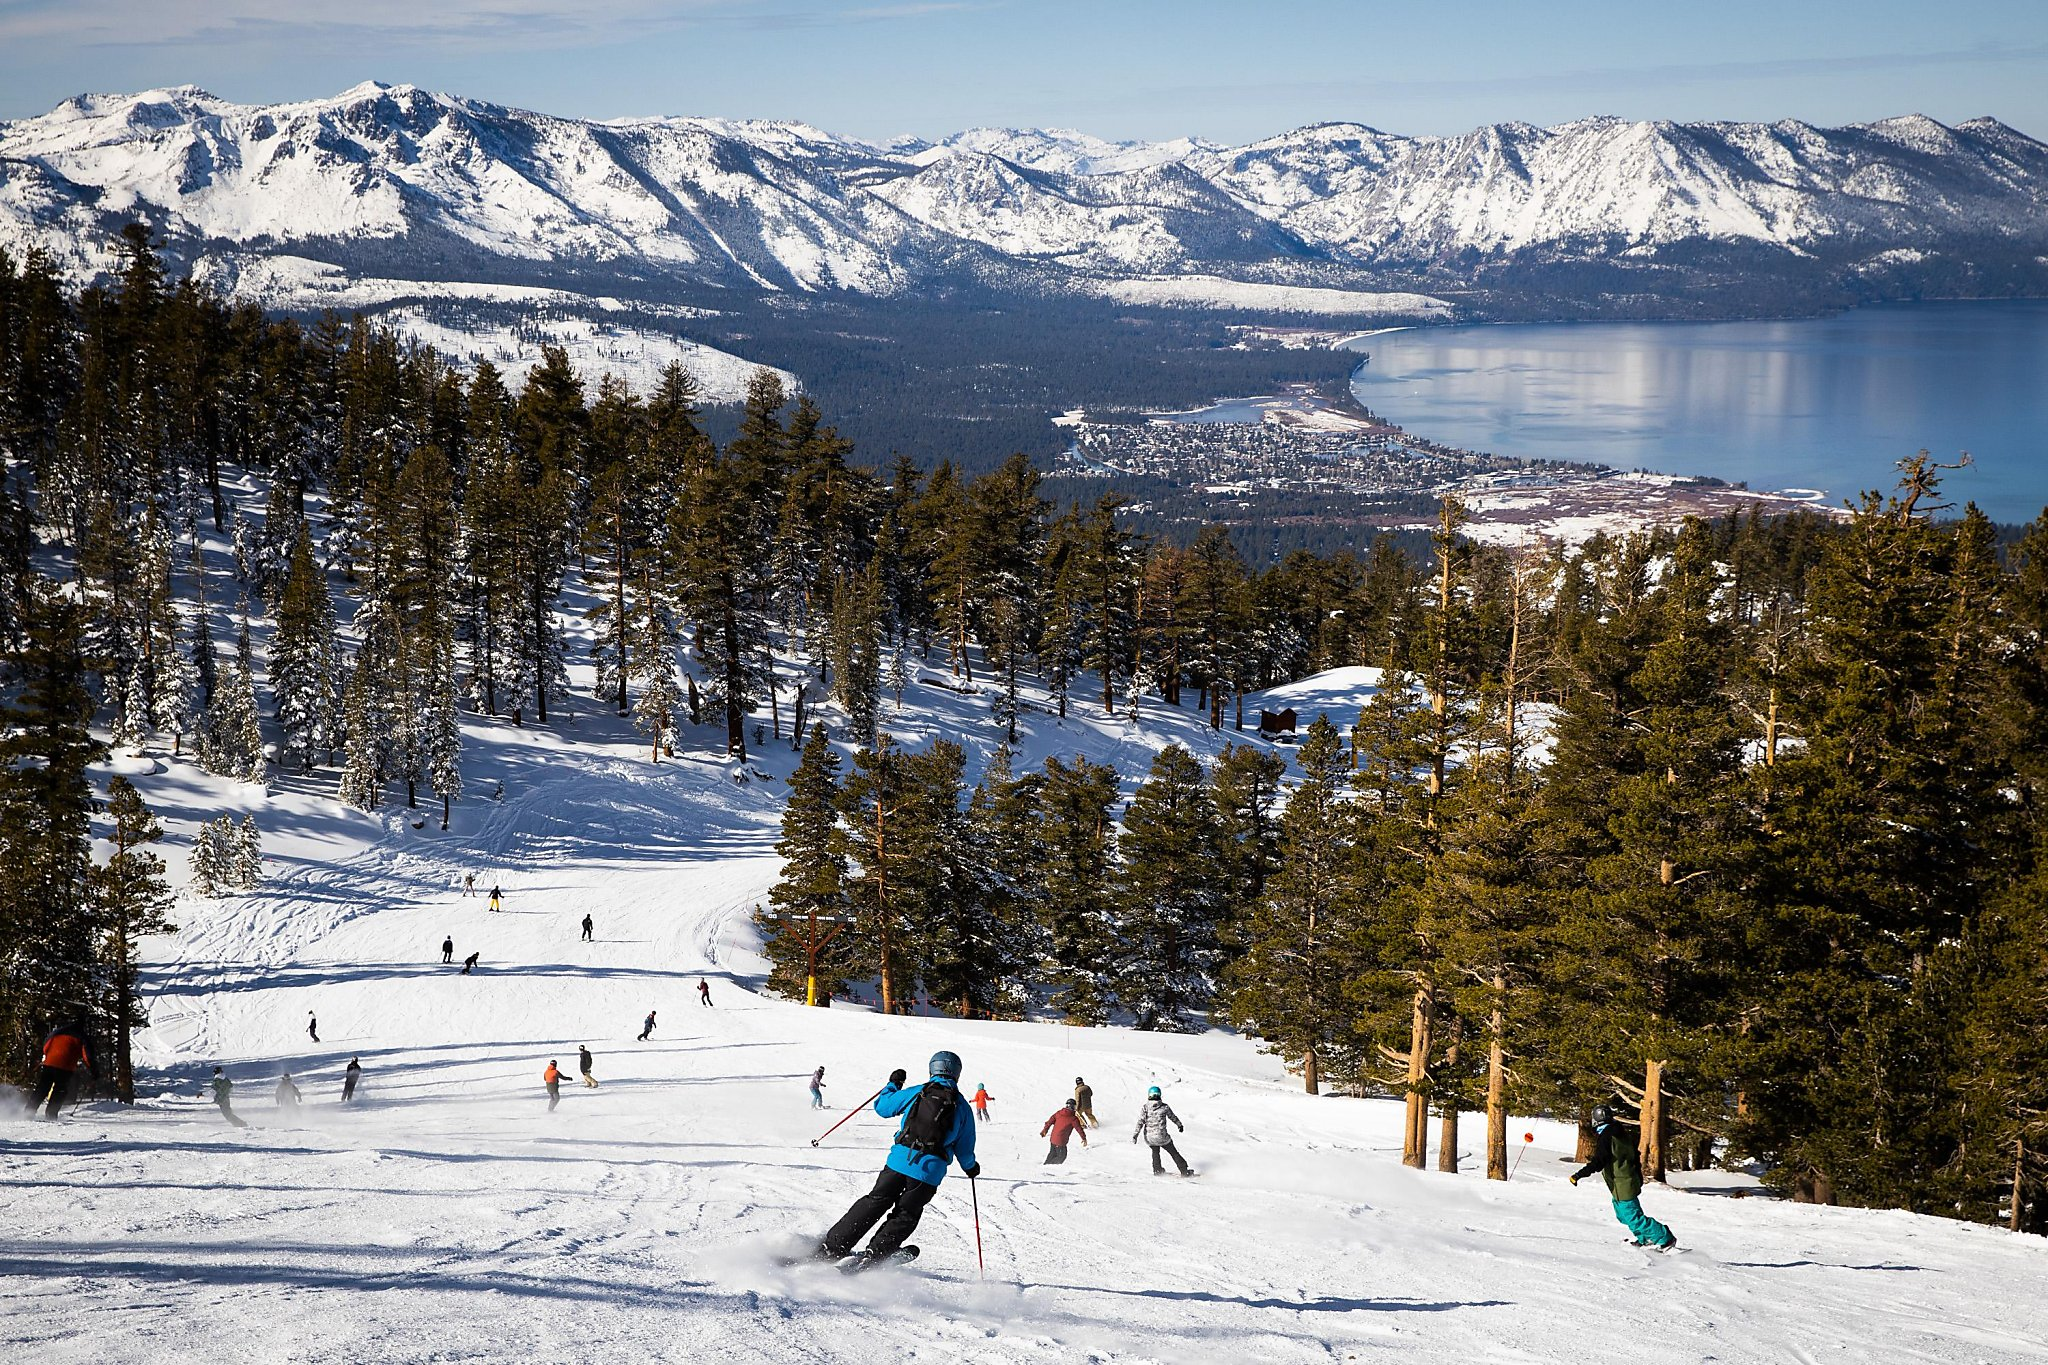 After the pandemic winter, Tahoe skiing will change. Here's how